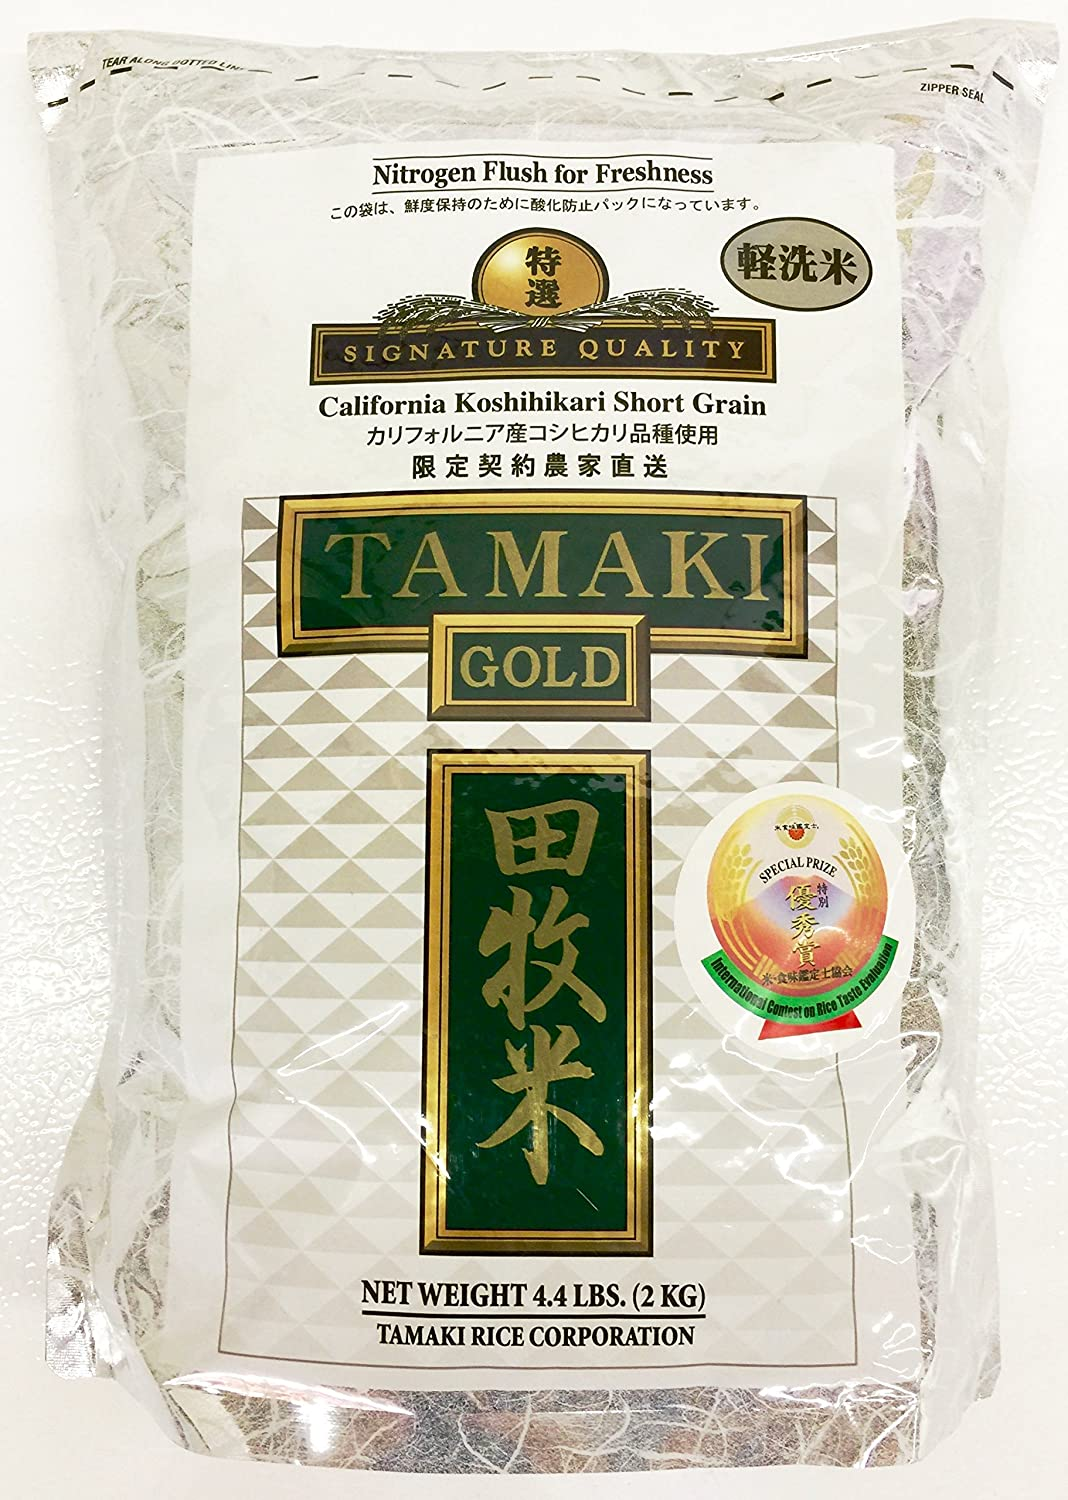 Tamaki Gold California Koshihikari Short Grain Rice, 4 4 Pound